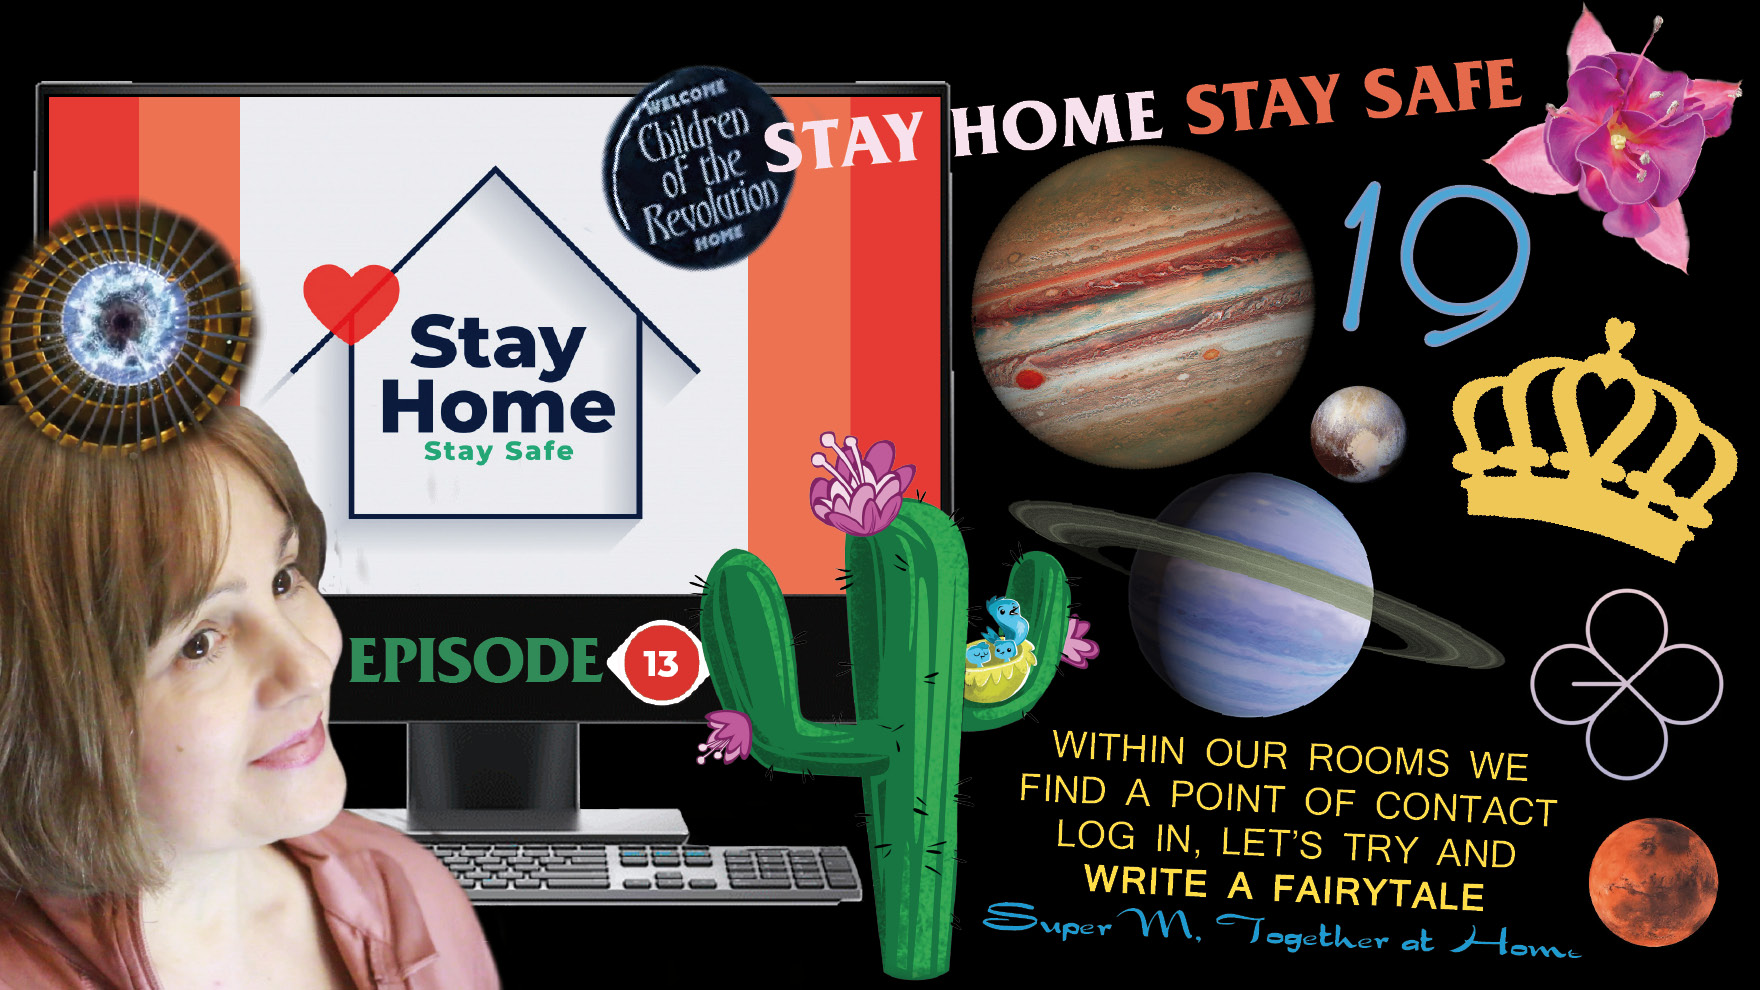 Quarantine time as a blessing in disguise: TOGETHER AT HOME & SAVE our spaceship Earth